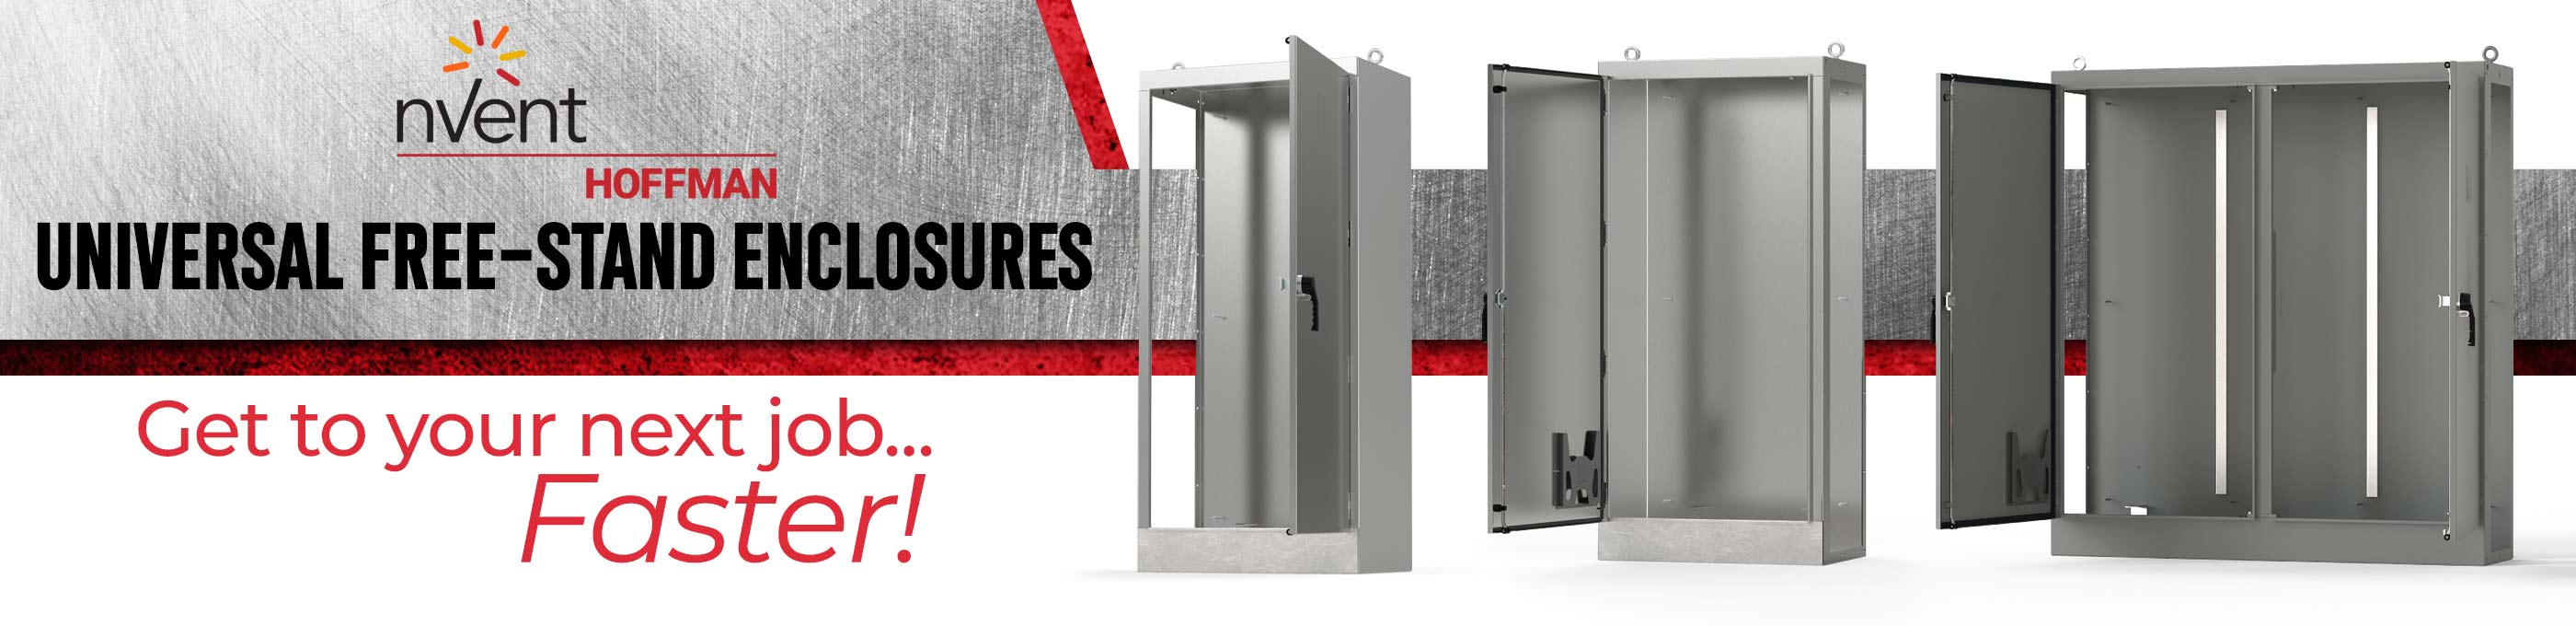 nVent Hoffman Universal Free Stand Enclosures